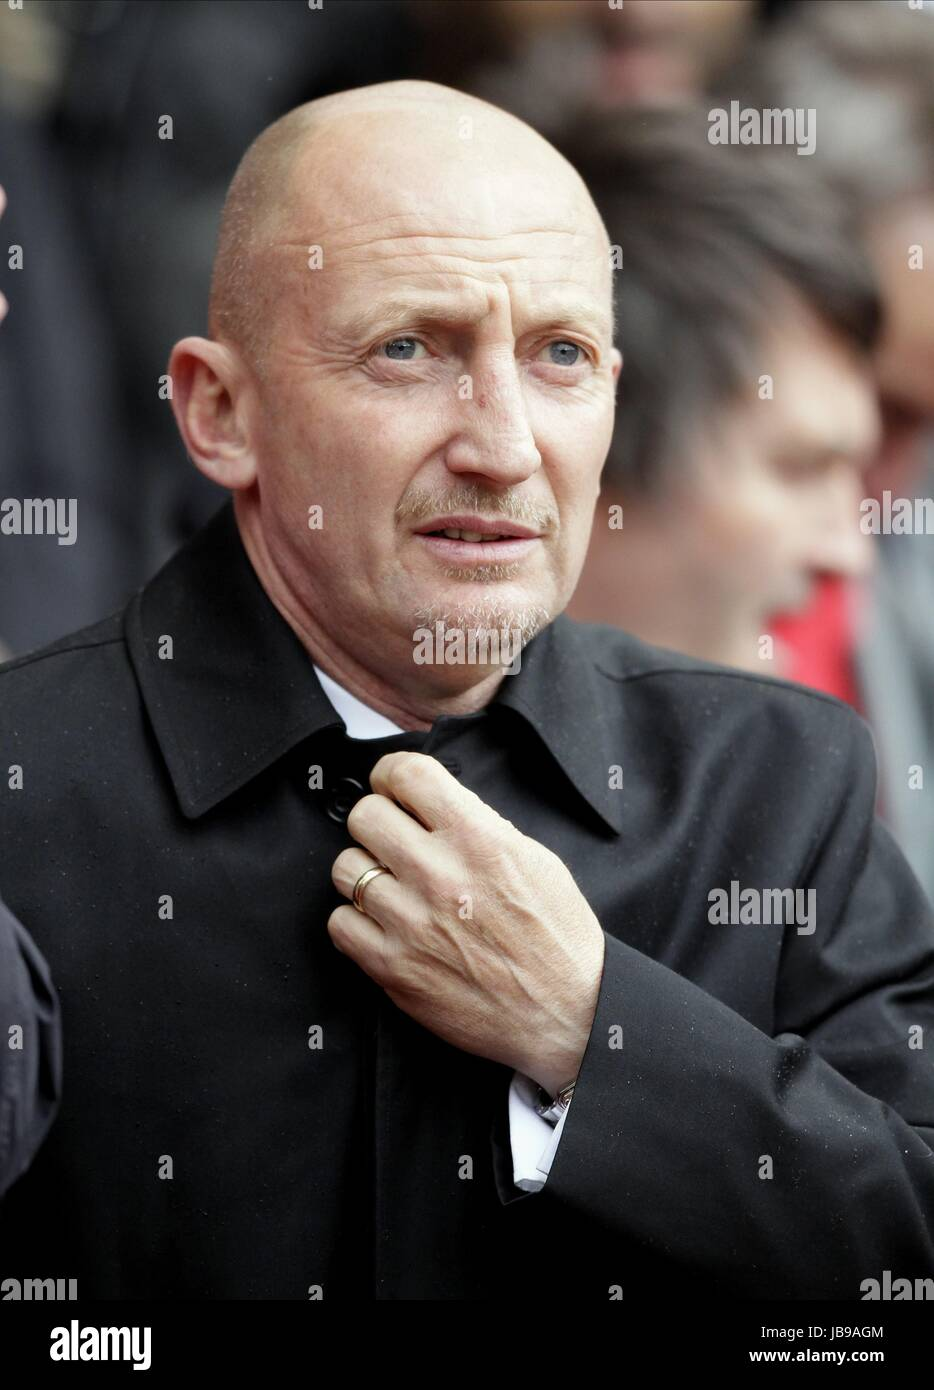 Ian Holloway Blackpool Fc Manager Blackpool Fc Manager Old Trafford Stock Photo Alamy